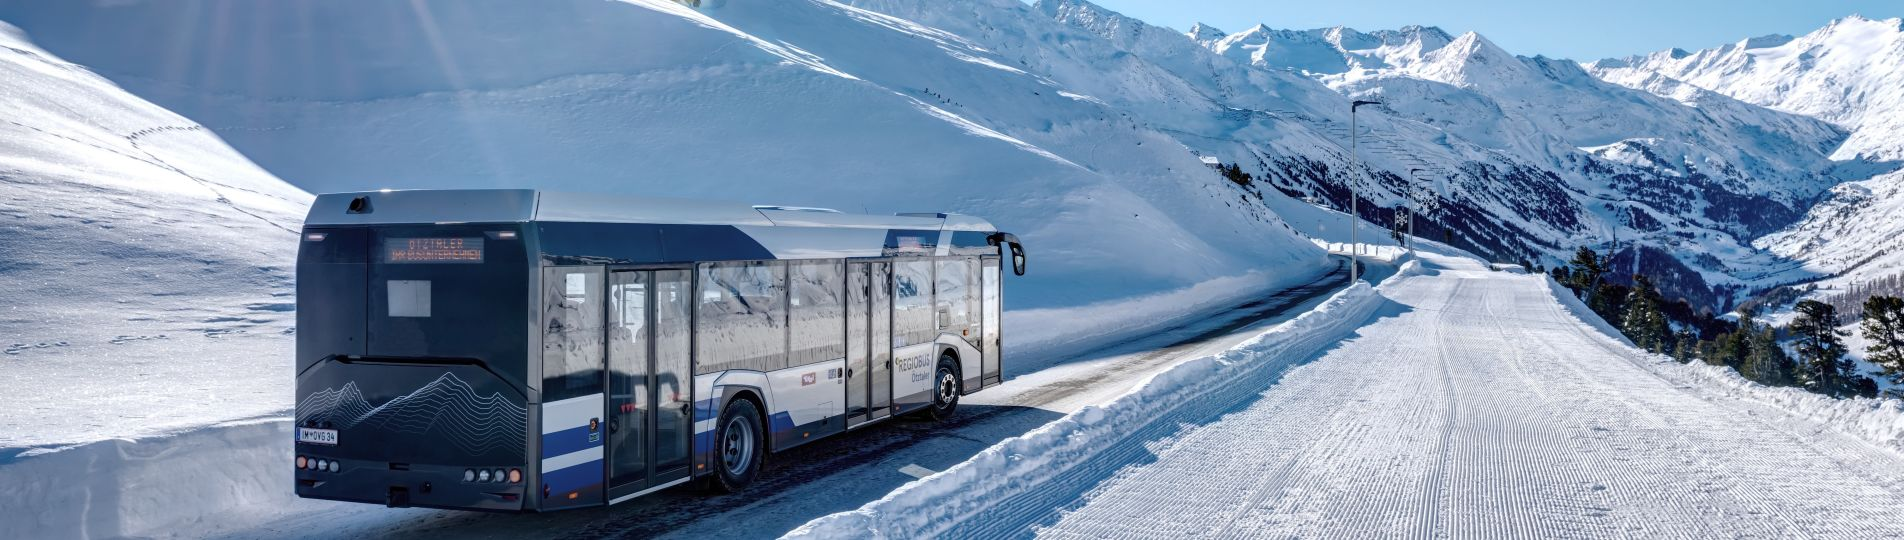 Solaris buses perfectly prepared for difficult winter conditions